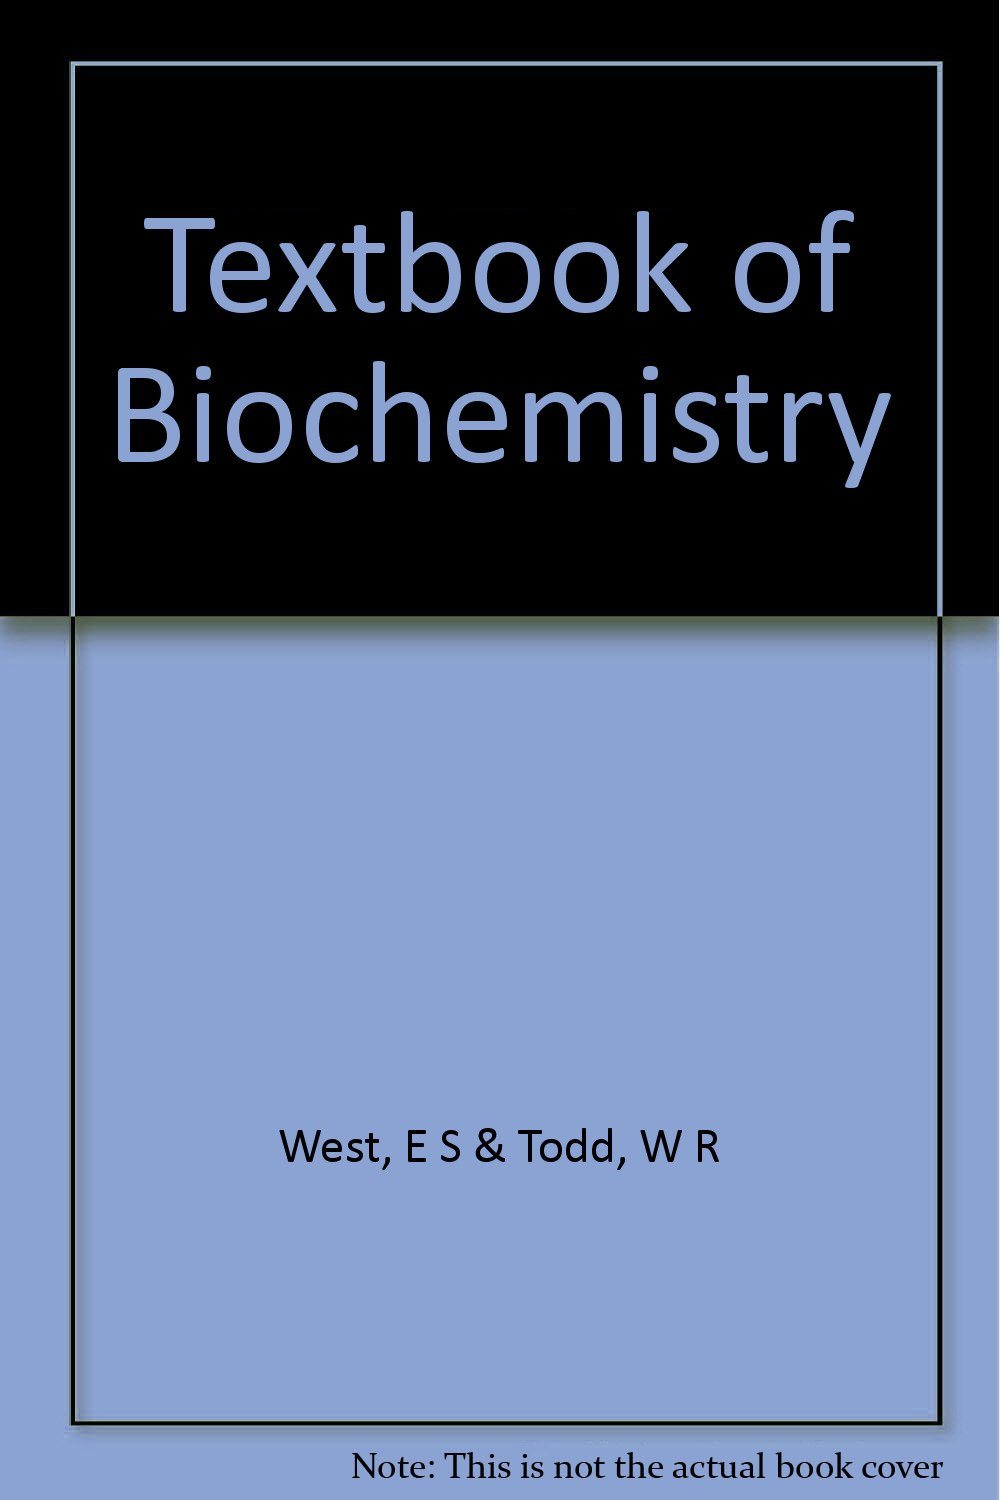 textbook of biochemistry by west and todd pdf free download